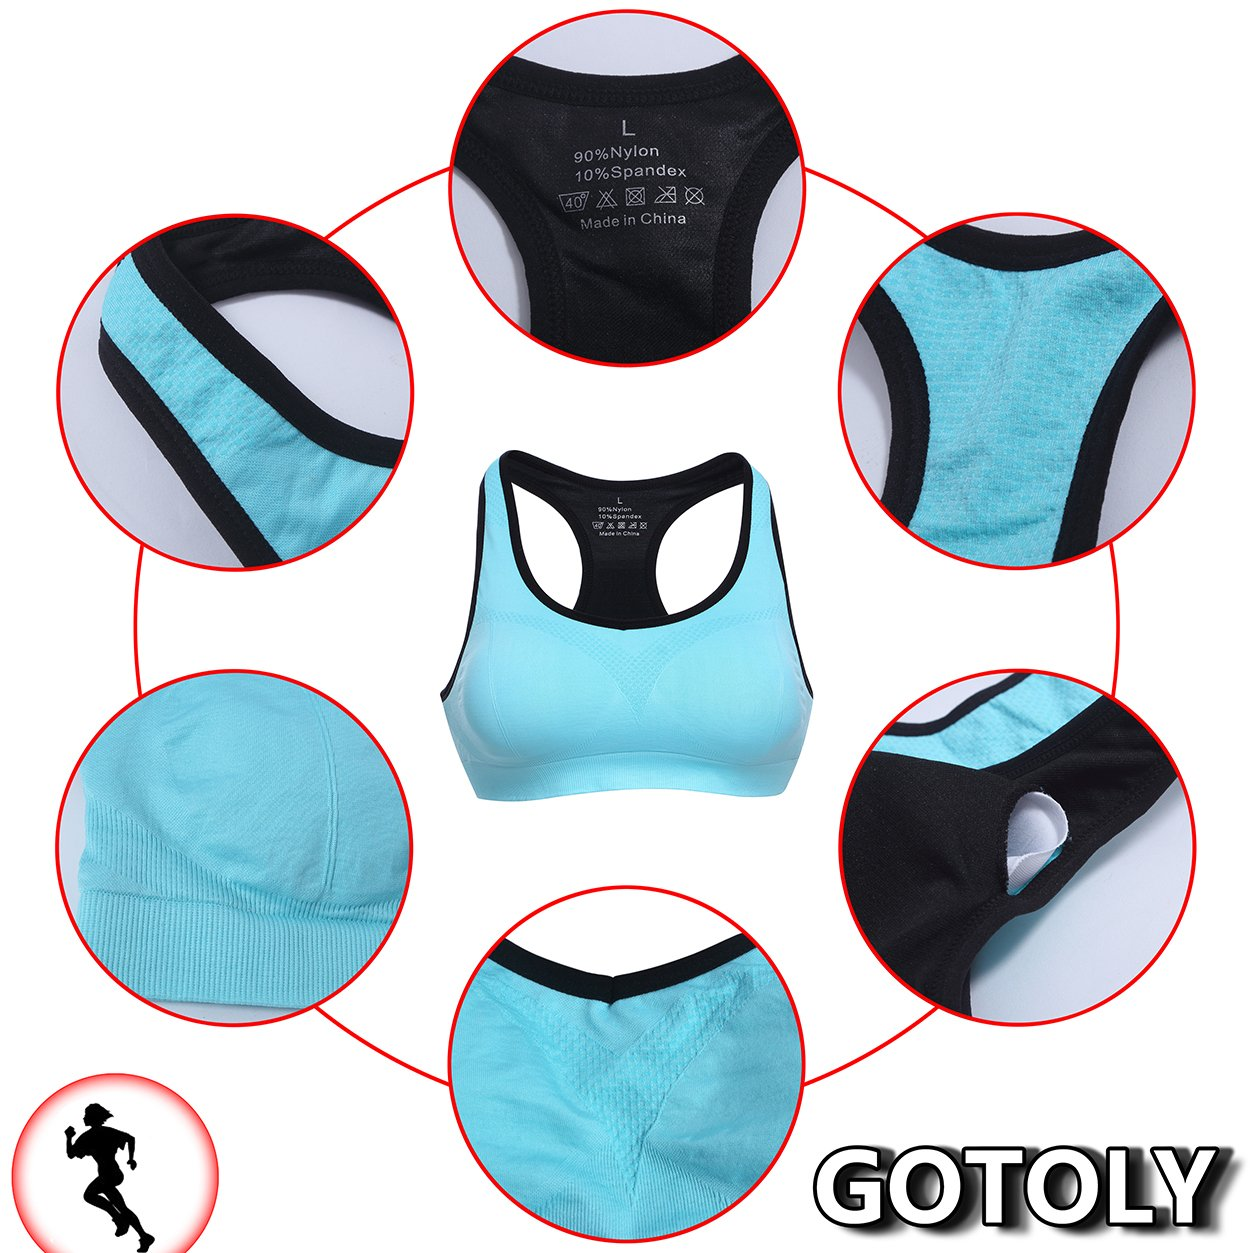 816bce663a Gotoly Jerseys Push Up Chest Shapewear Body Keep Sexy Everyday Bra   Amazon.co.uk  Clothing